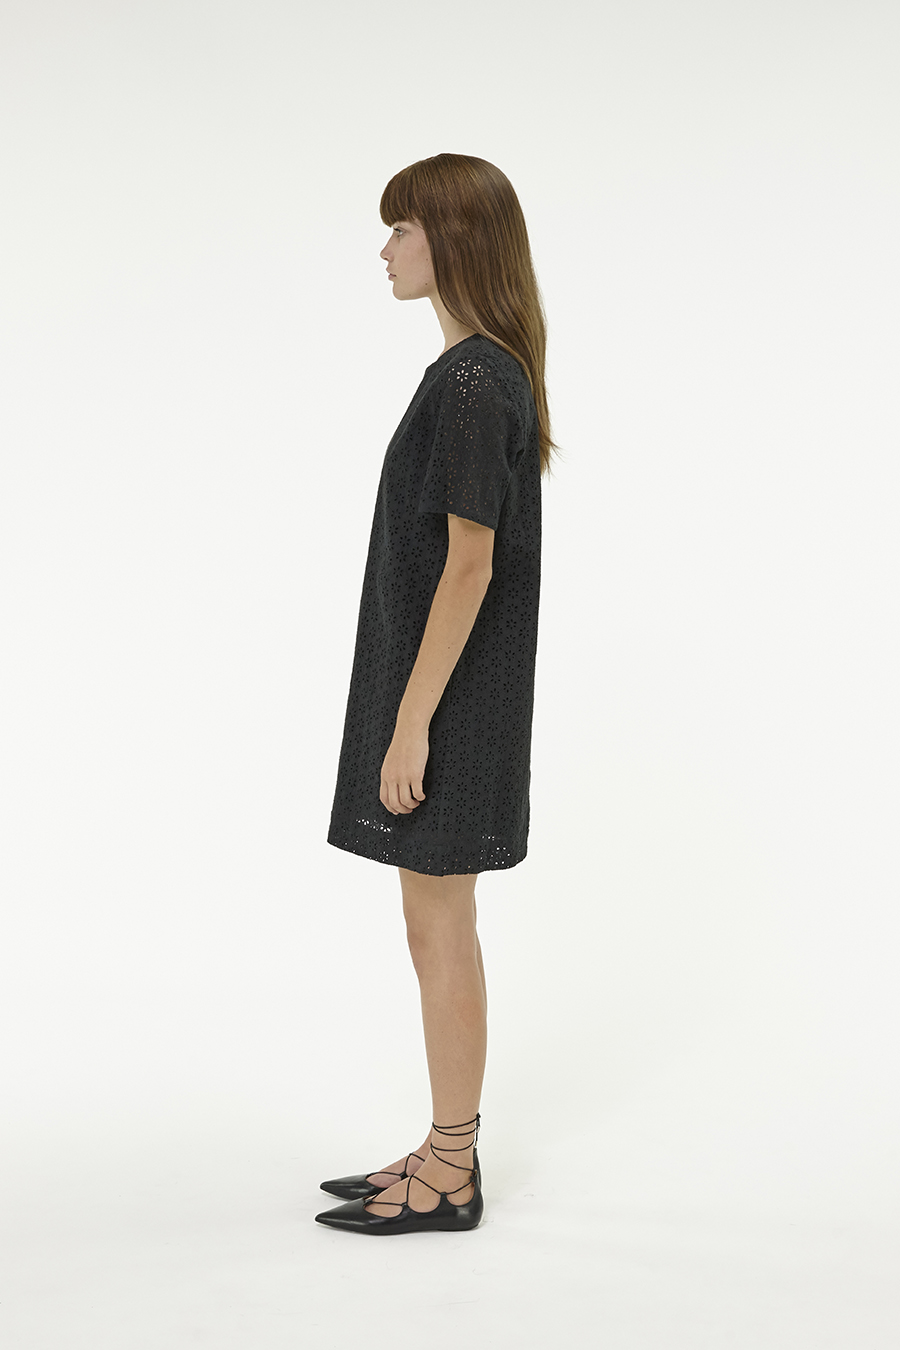 Huffer_Q3-16_W-Hope-Shell-Dress_Black-02